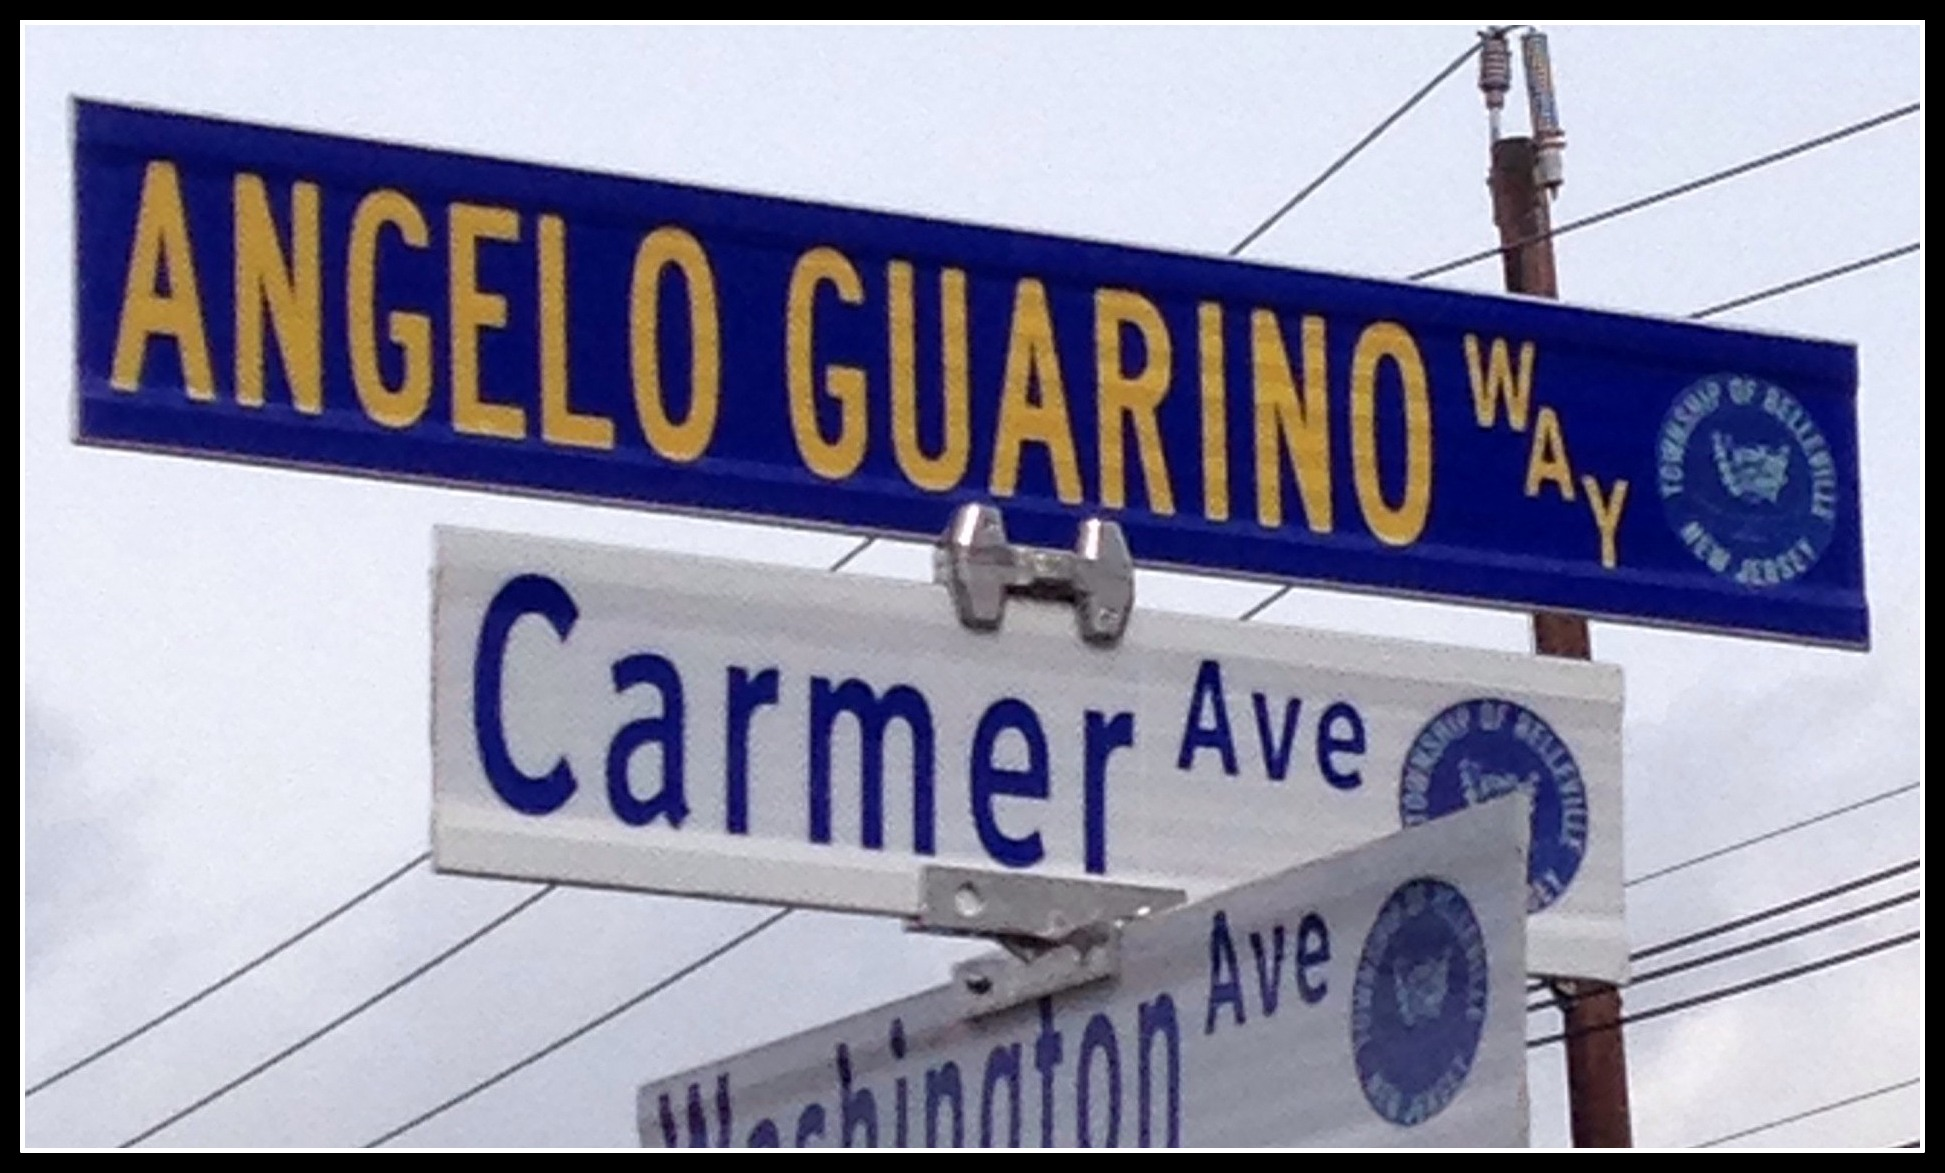 Angelo Guarino Way, Belleville, N.J.